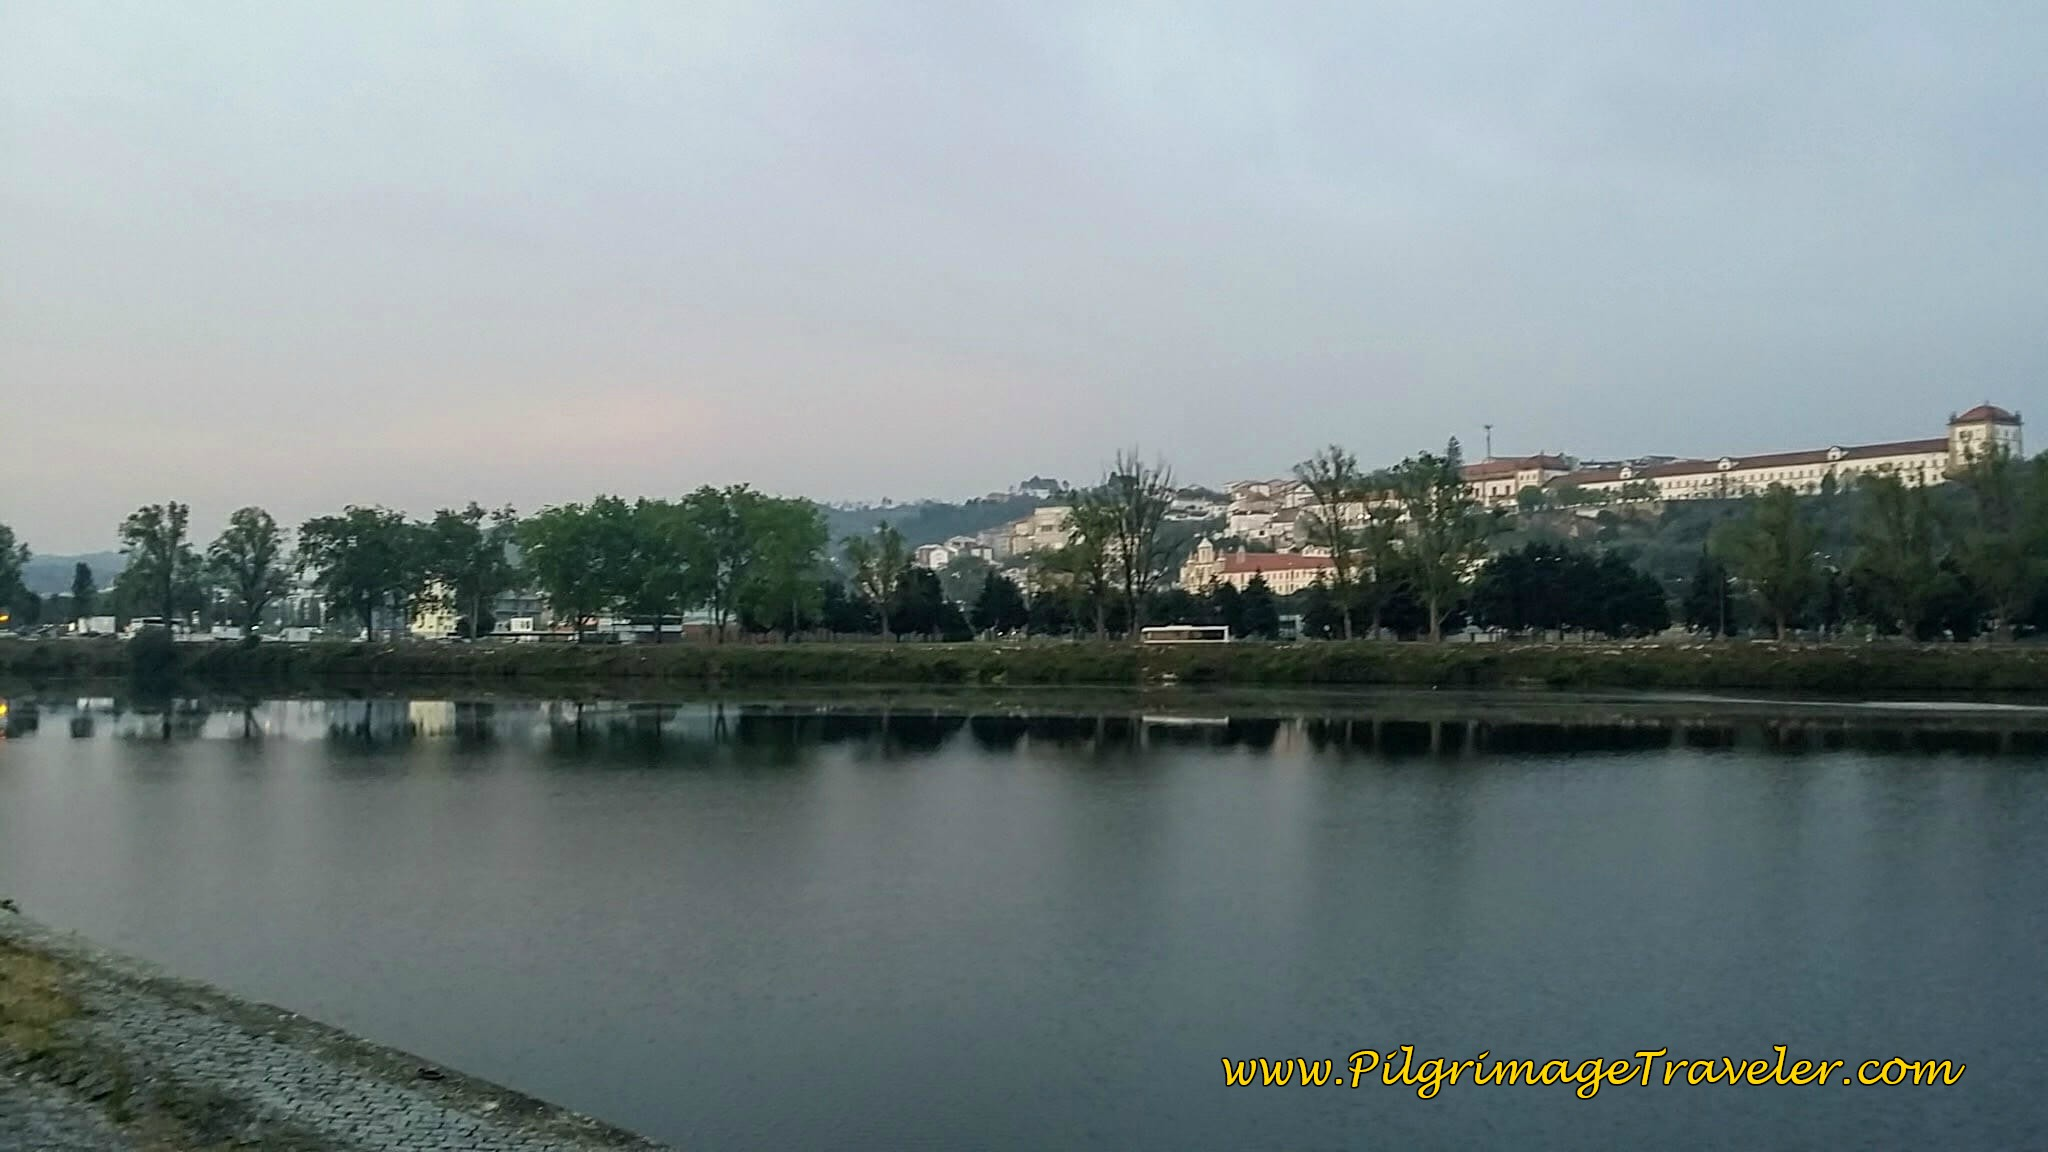 View Across the Rio Mondego, at dawn in Coimbra, Portugal